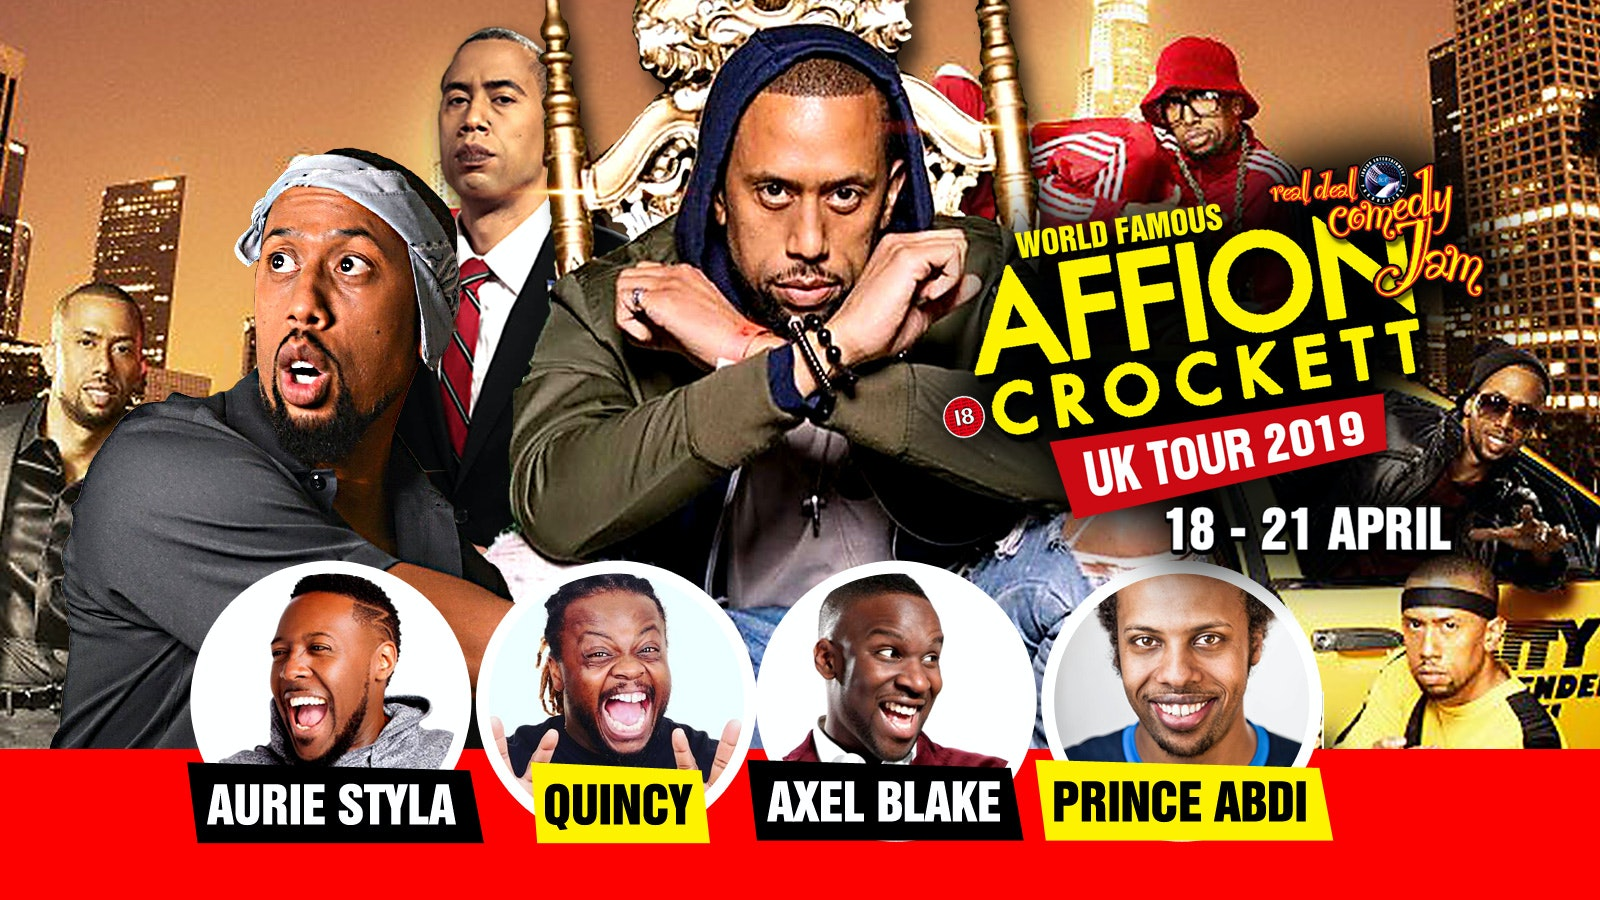 Affion Crockett Live in Birmingham – Real Deal Comedy Jam Tour